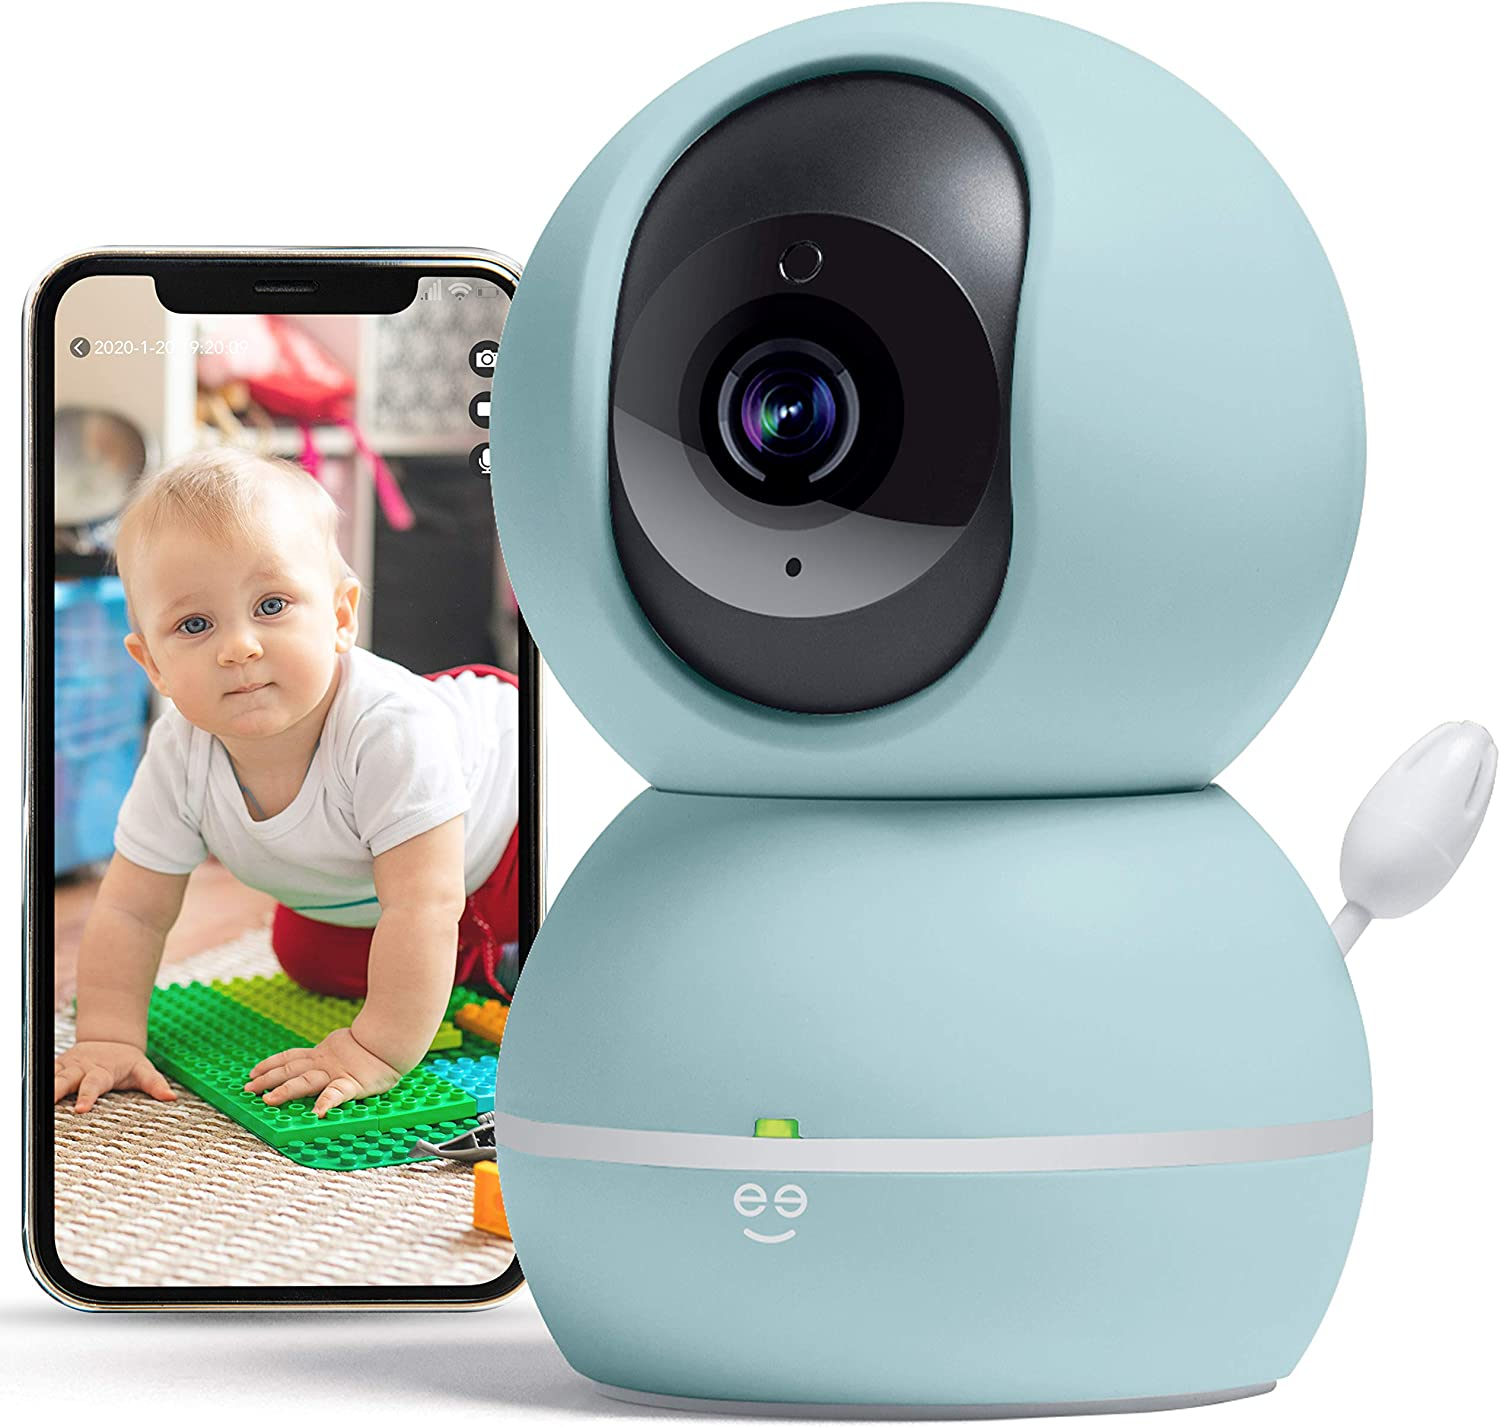 Geeni Smart Home Pet and Baby Monitor with Camera, 1080p Wireless WiFi Camera with Motion and Sound Alert (Pastel Blue)